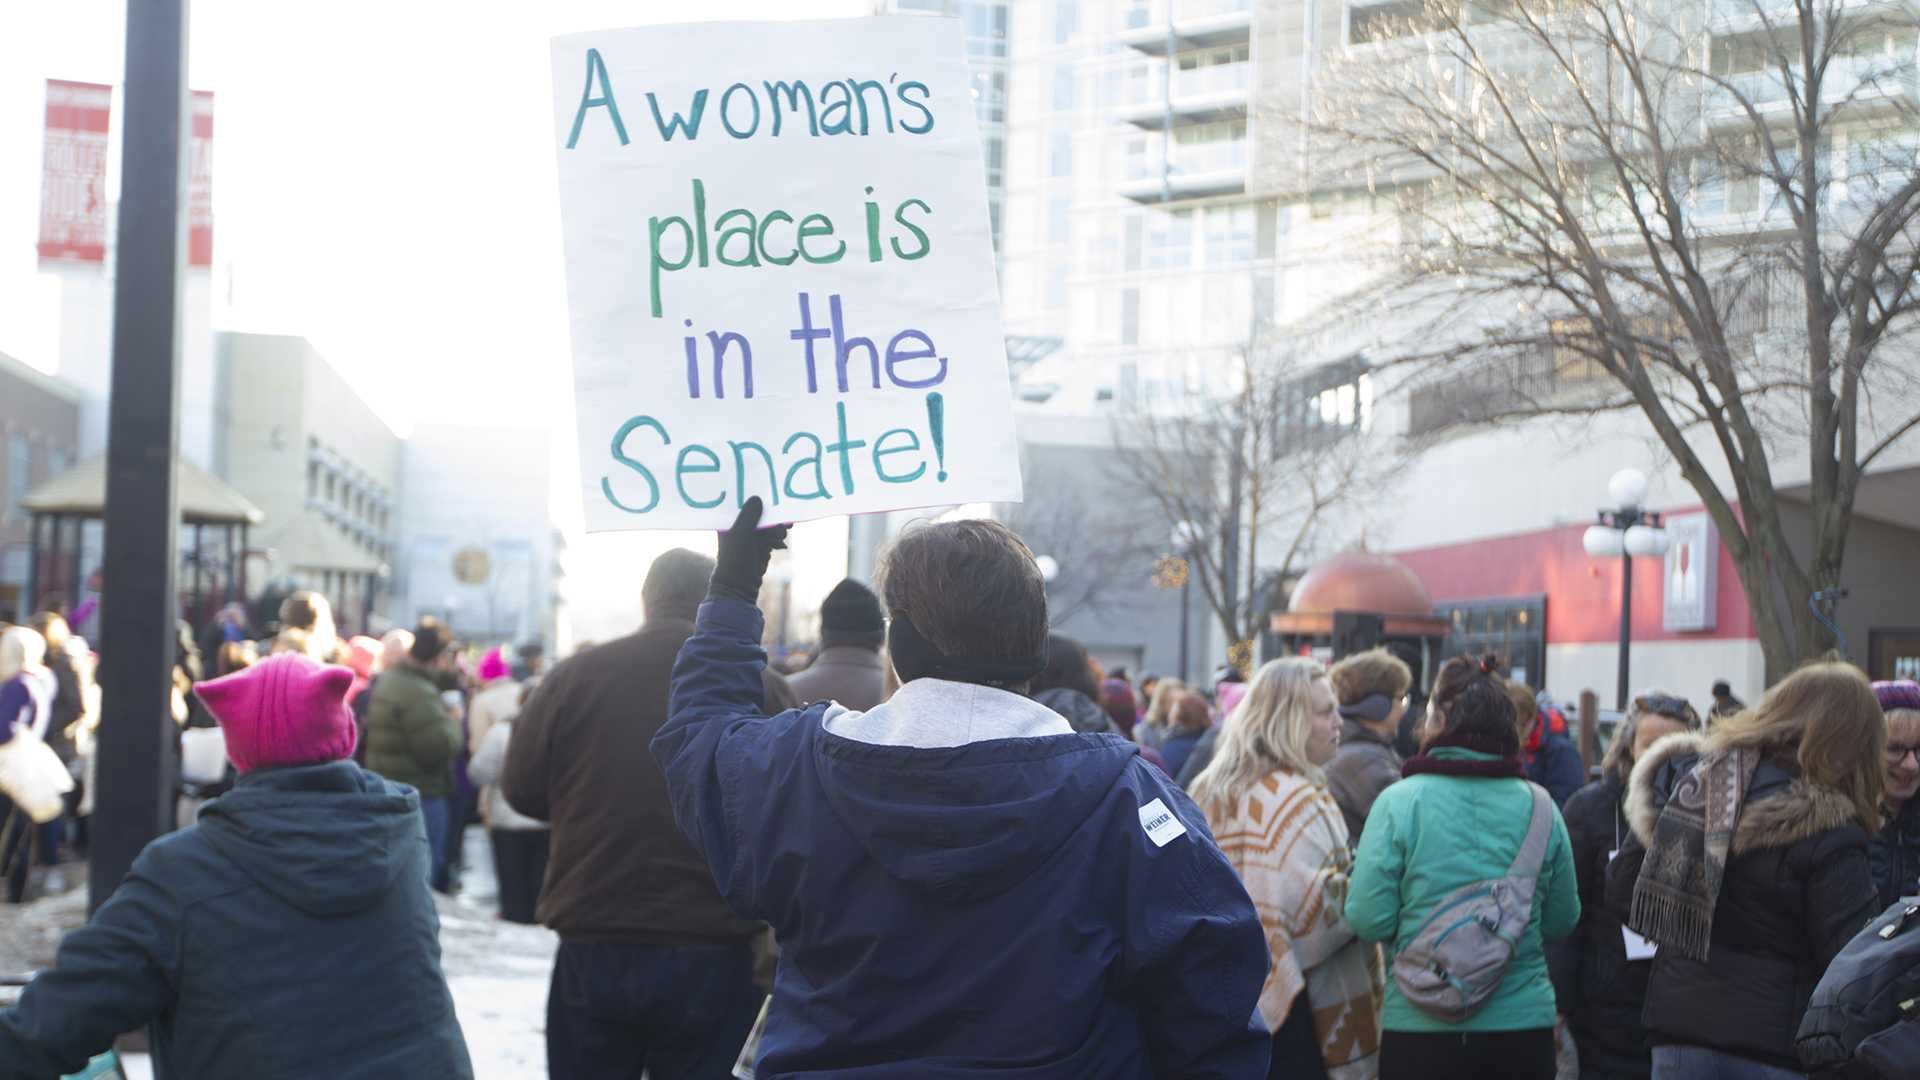 A demonstrator holds her sign during the Women's March on January 20, 2018. Hundreds gathered on the Ped Mall to listen to speakers and march for women's rights. (Katie Goodale/The Daily Iowan)